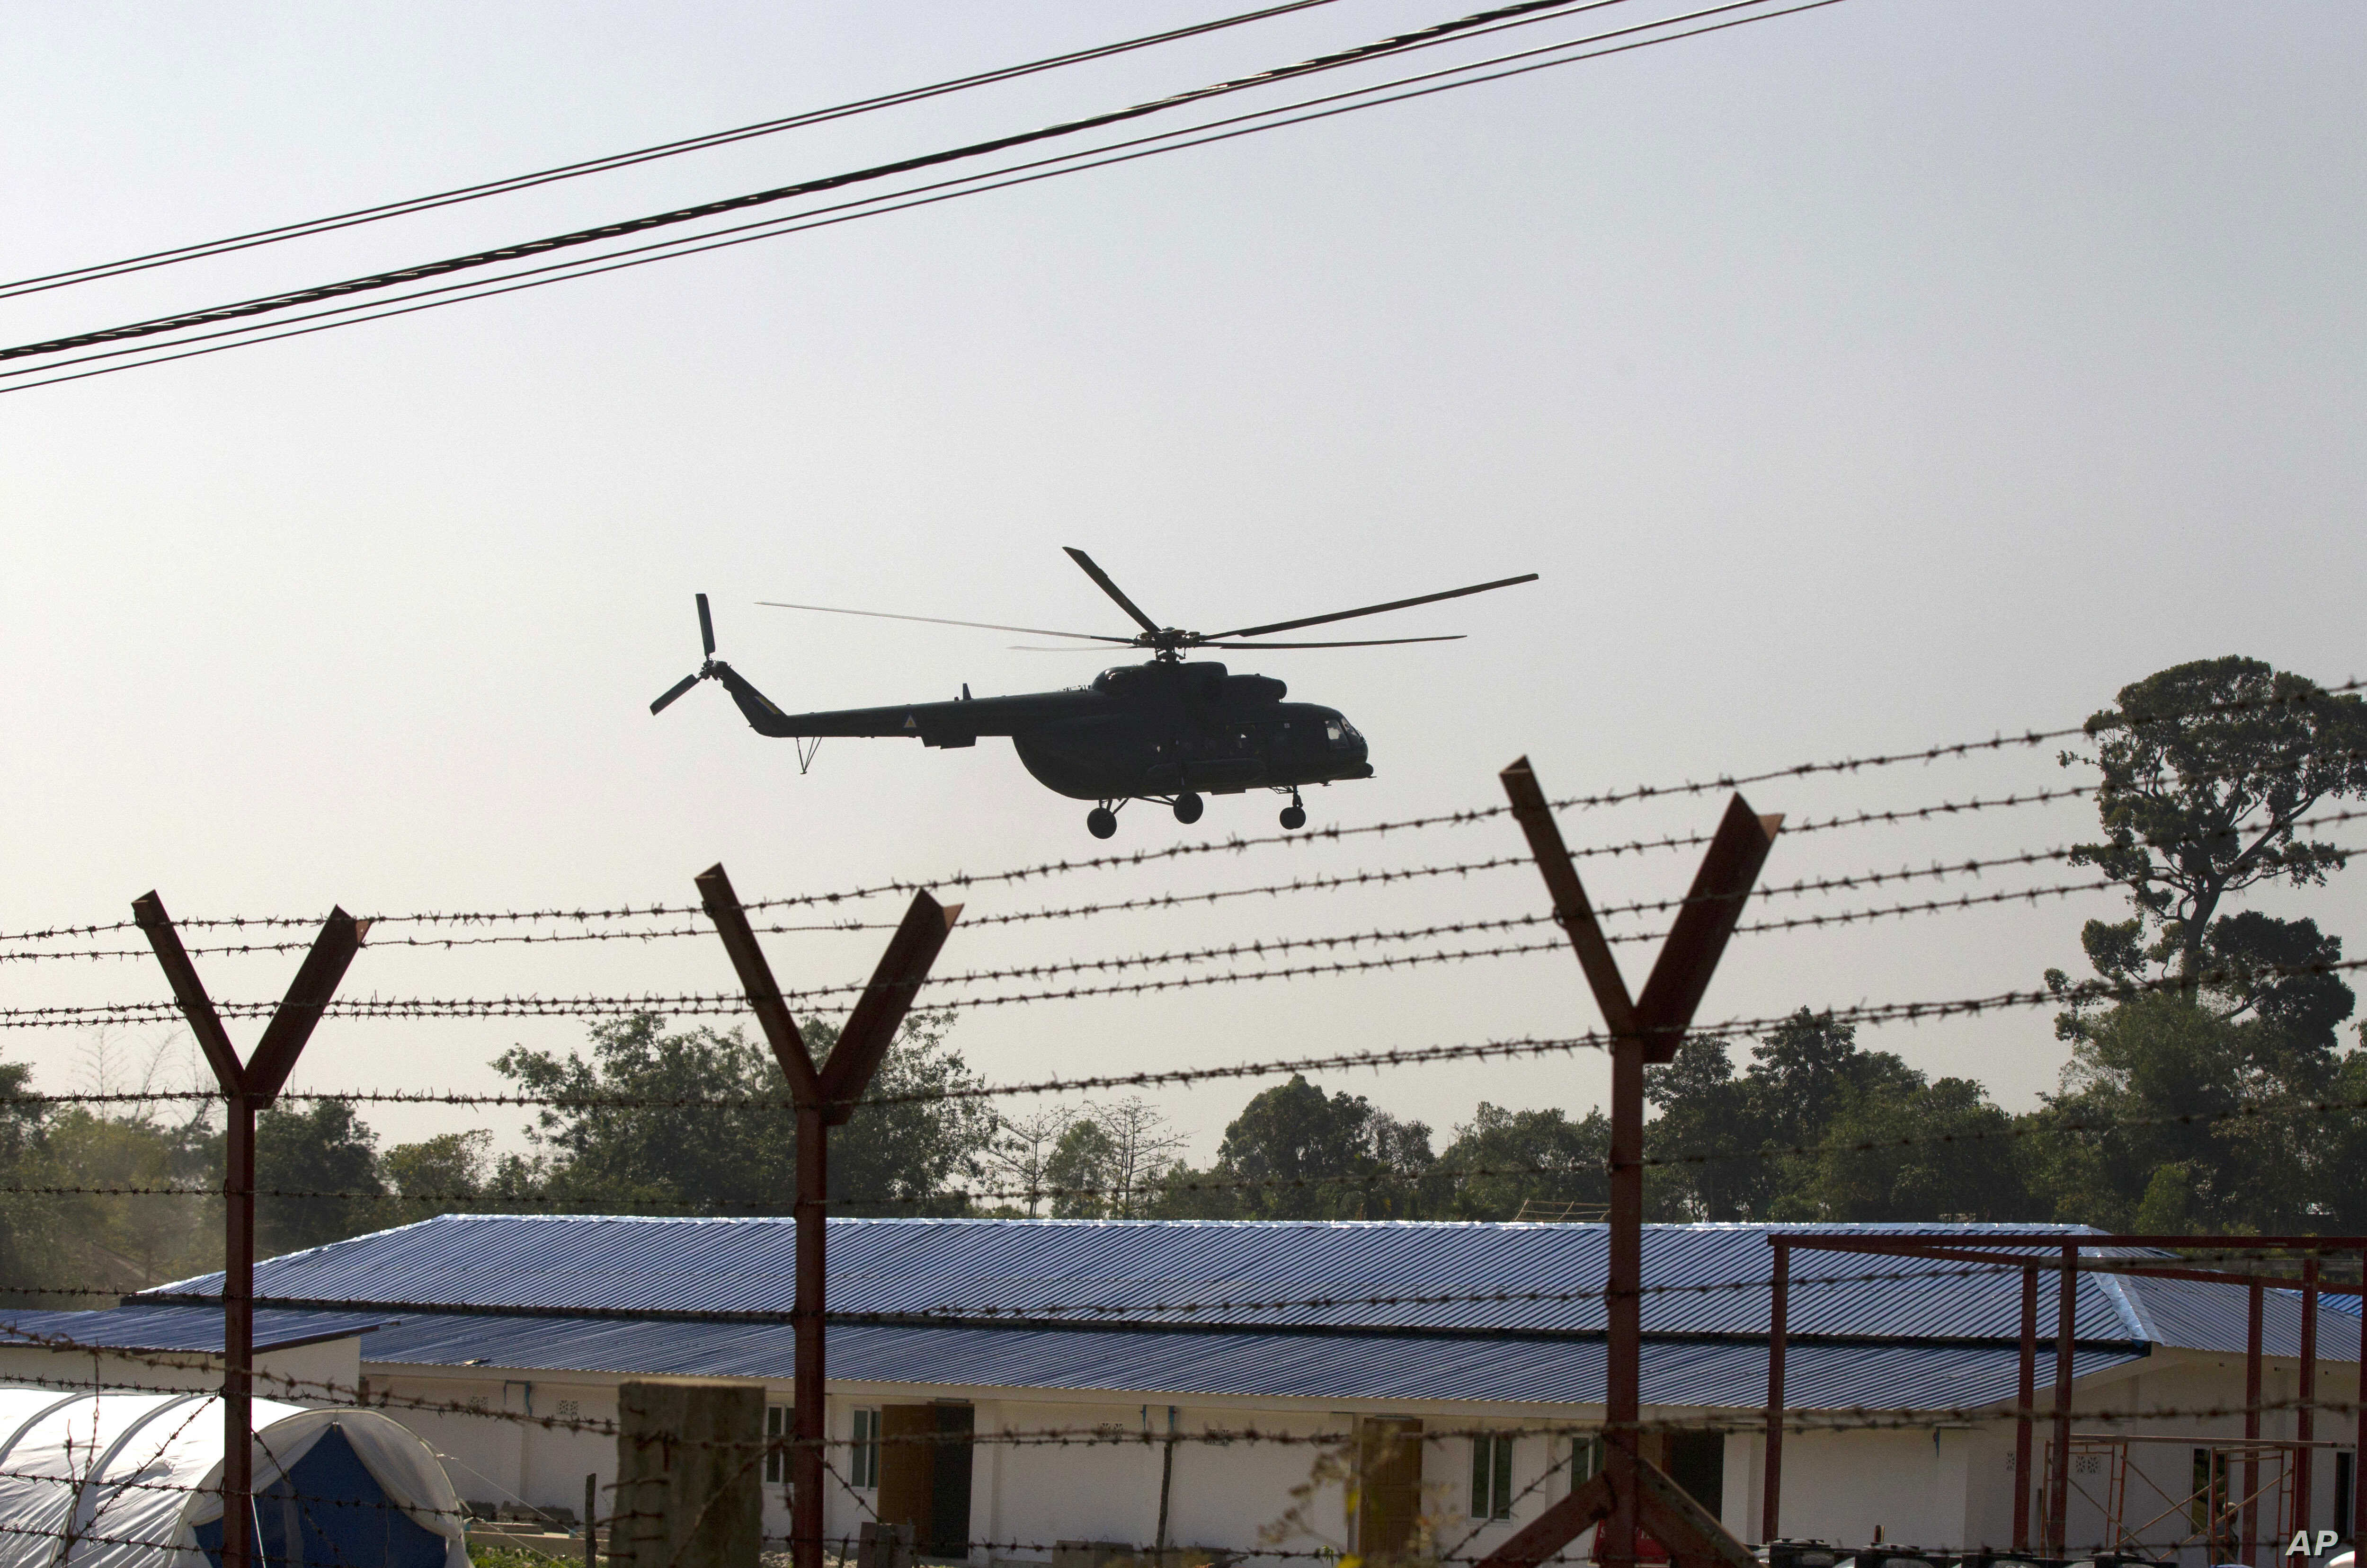 A helicopter carrying an advisory commission lands near newly-built repatriation camps prepared for Rohingya refugees expected to be returning from Bangladesh, Jan. 24, 2018, in Taungpyo, Myanmar.